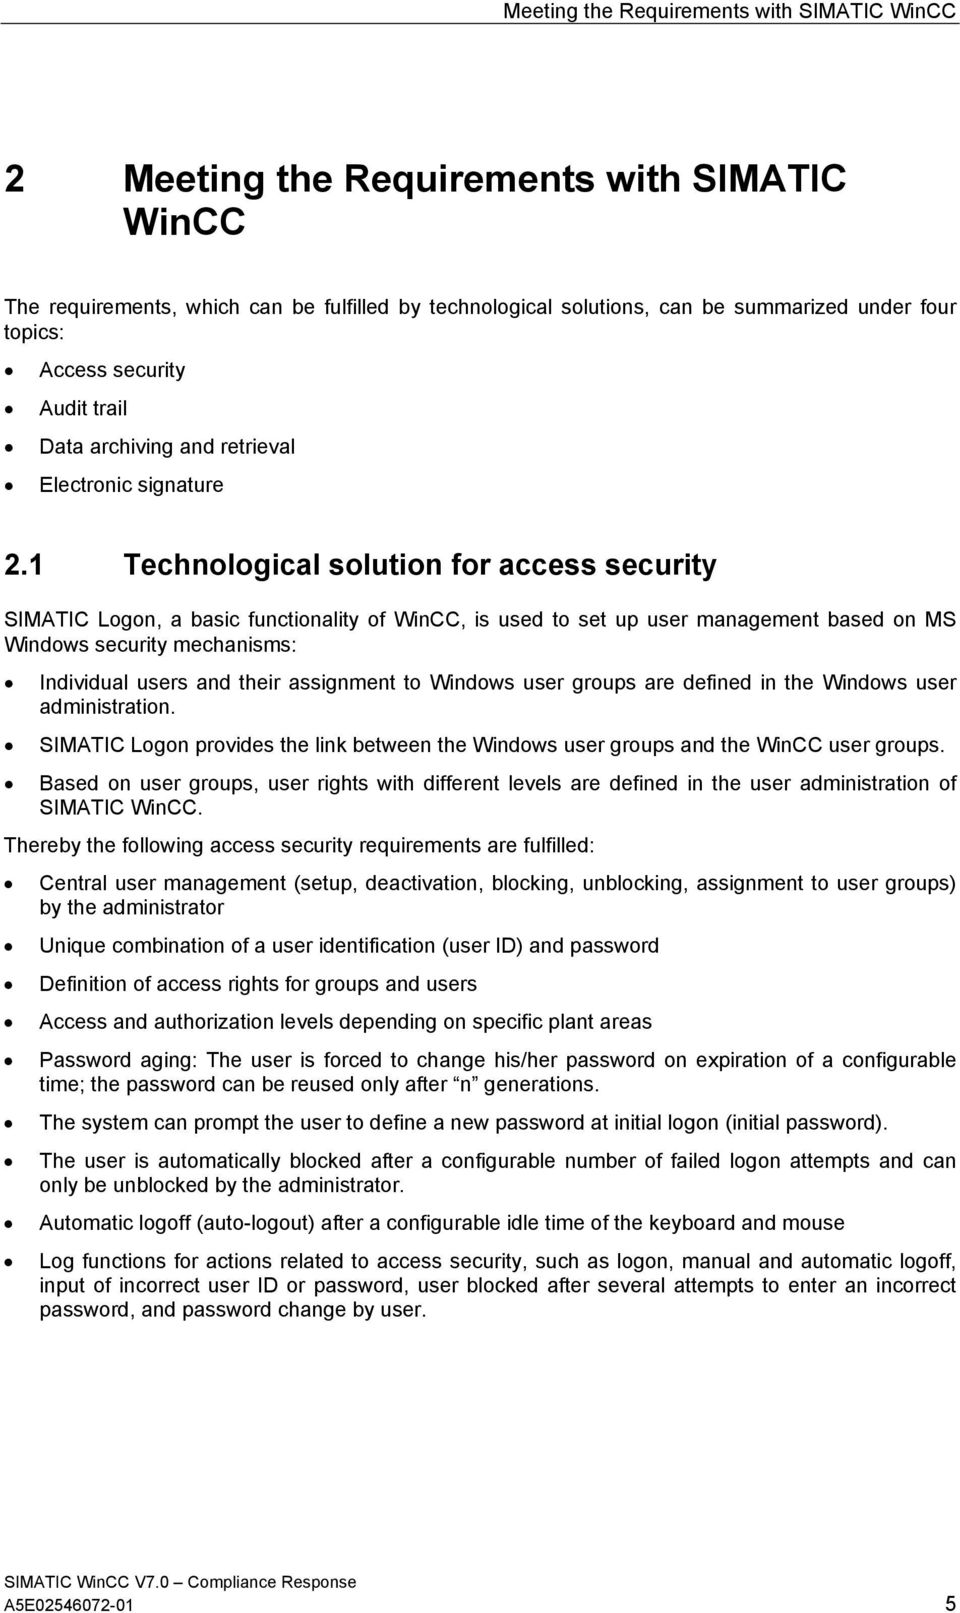 1 Technological solution for access security SIMATIC Logon, a basic functionality of WinCC, is used to set up user management based on MS Windows security mechanisms: Individual users and their